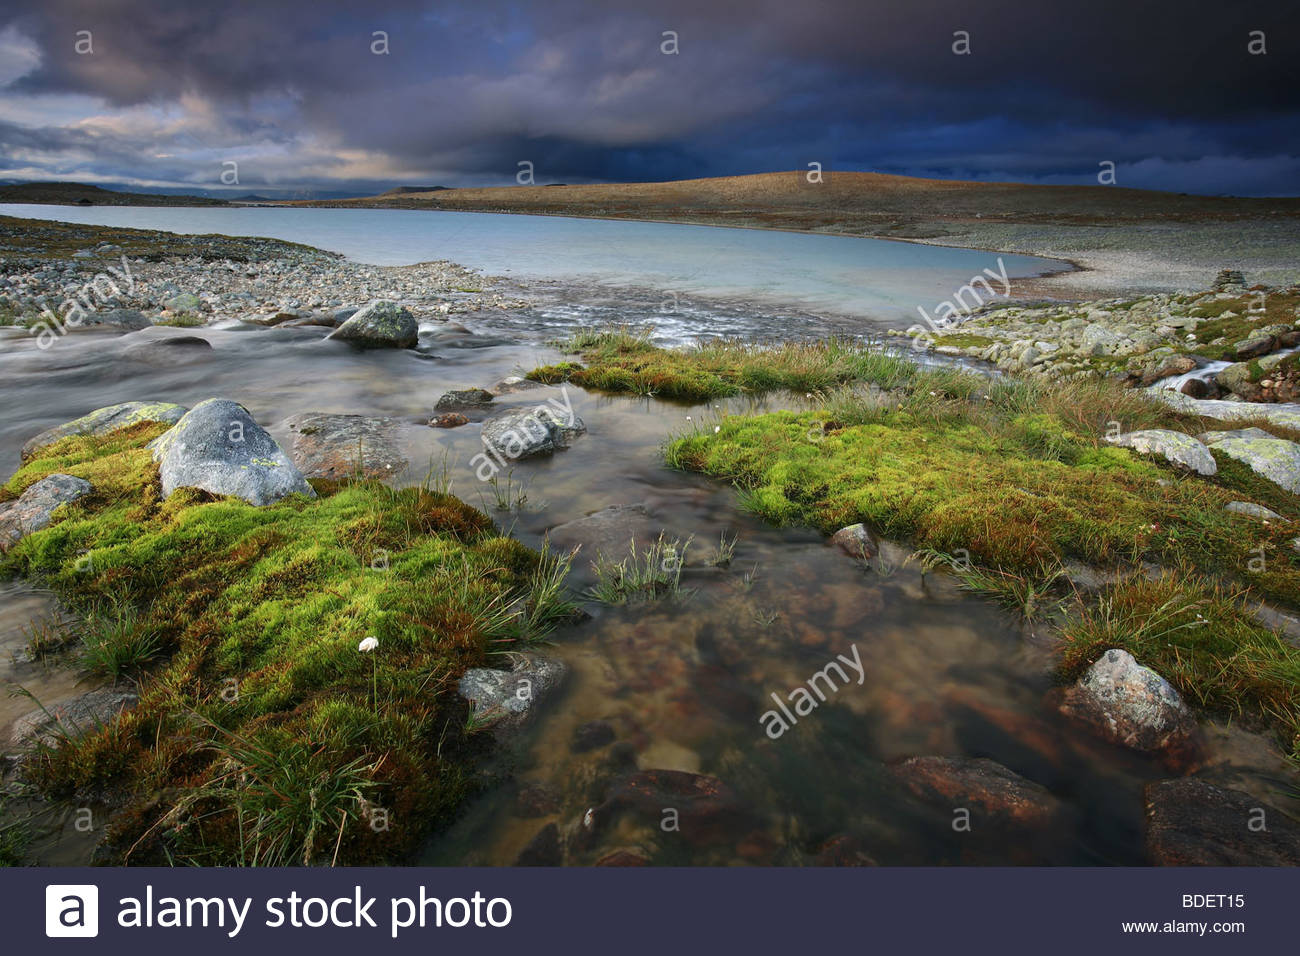 Green moss and river stream near Snøheim, in Dovrefjell national park, Dovre, Norway. - Stock Image